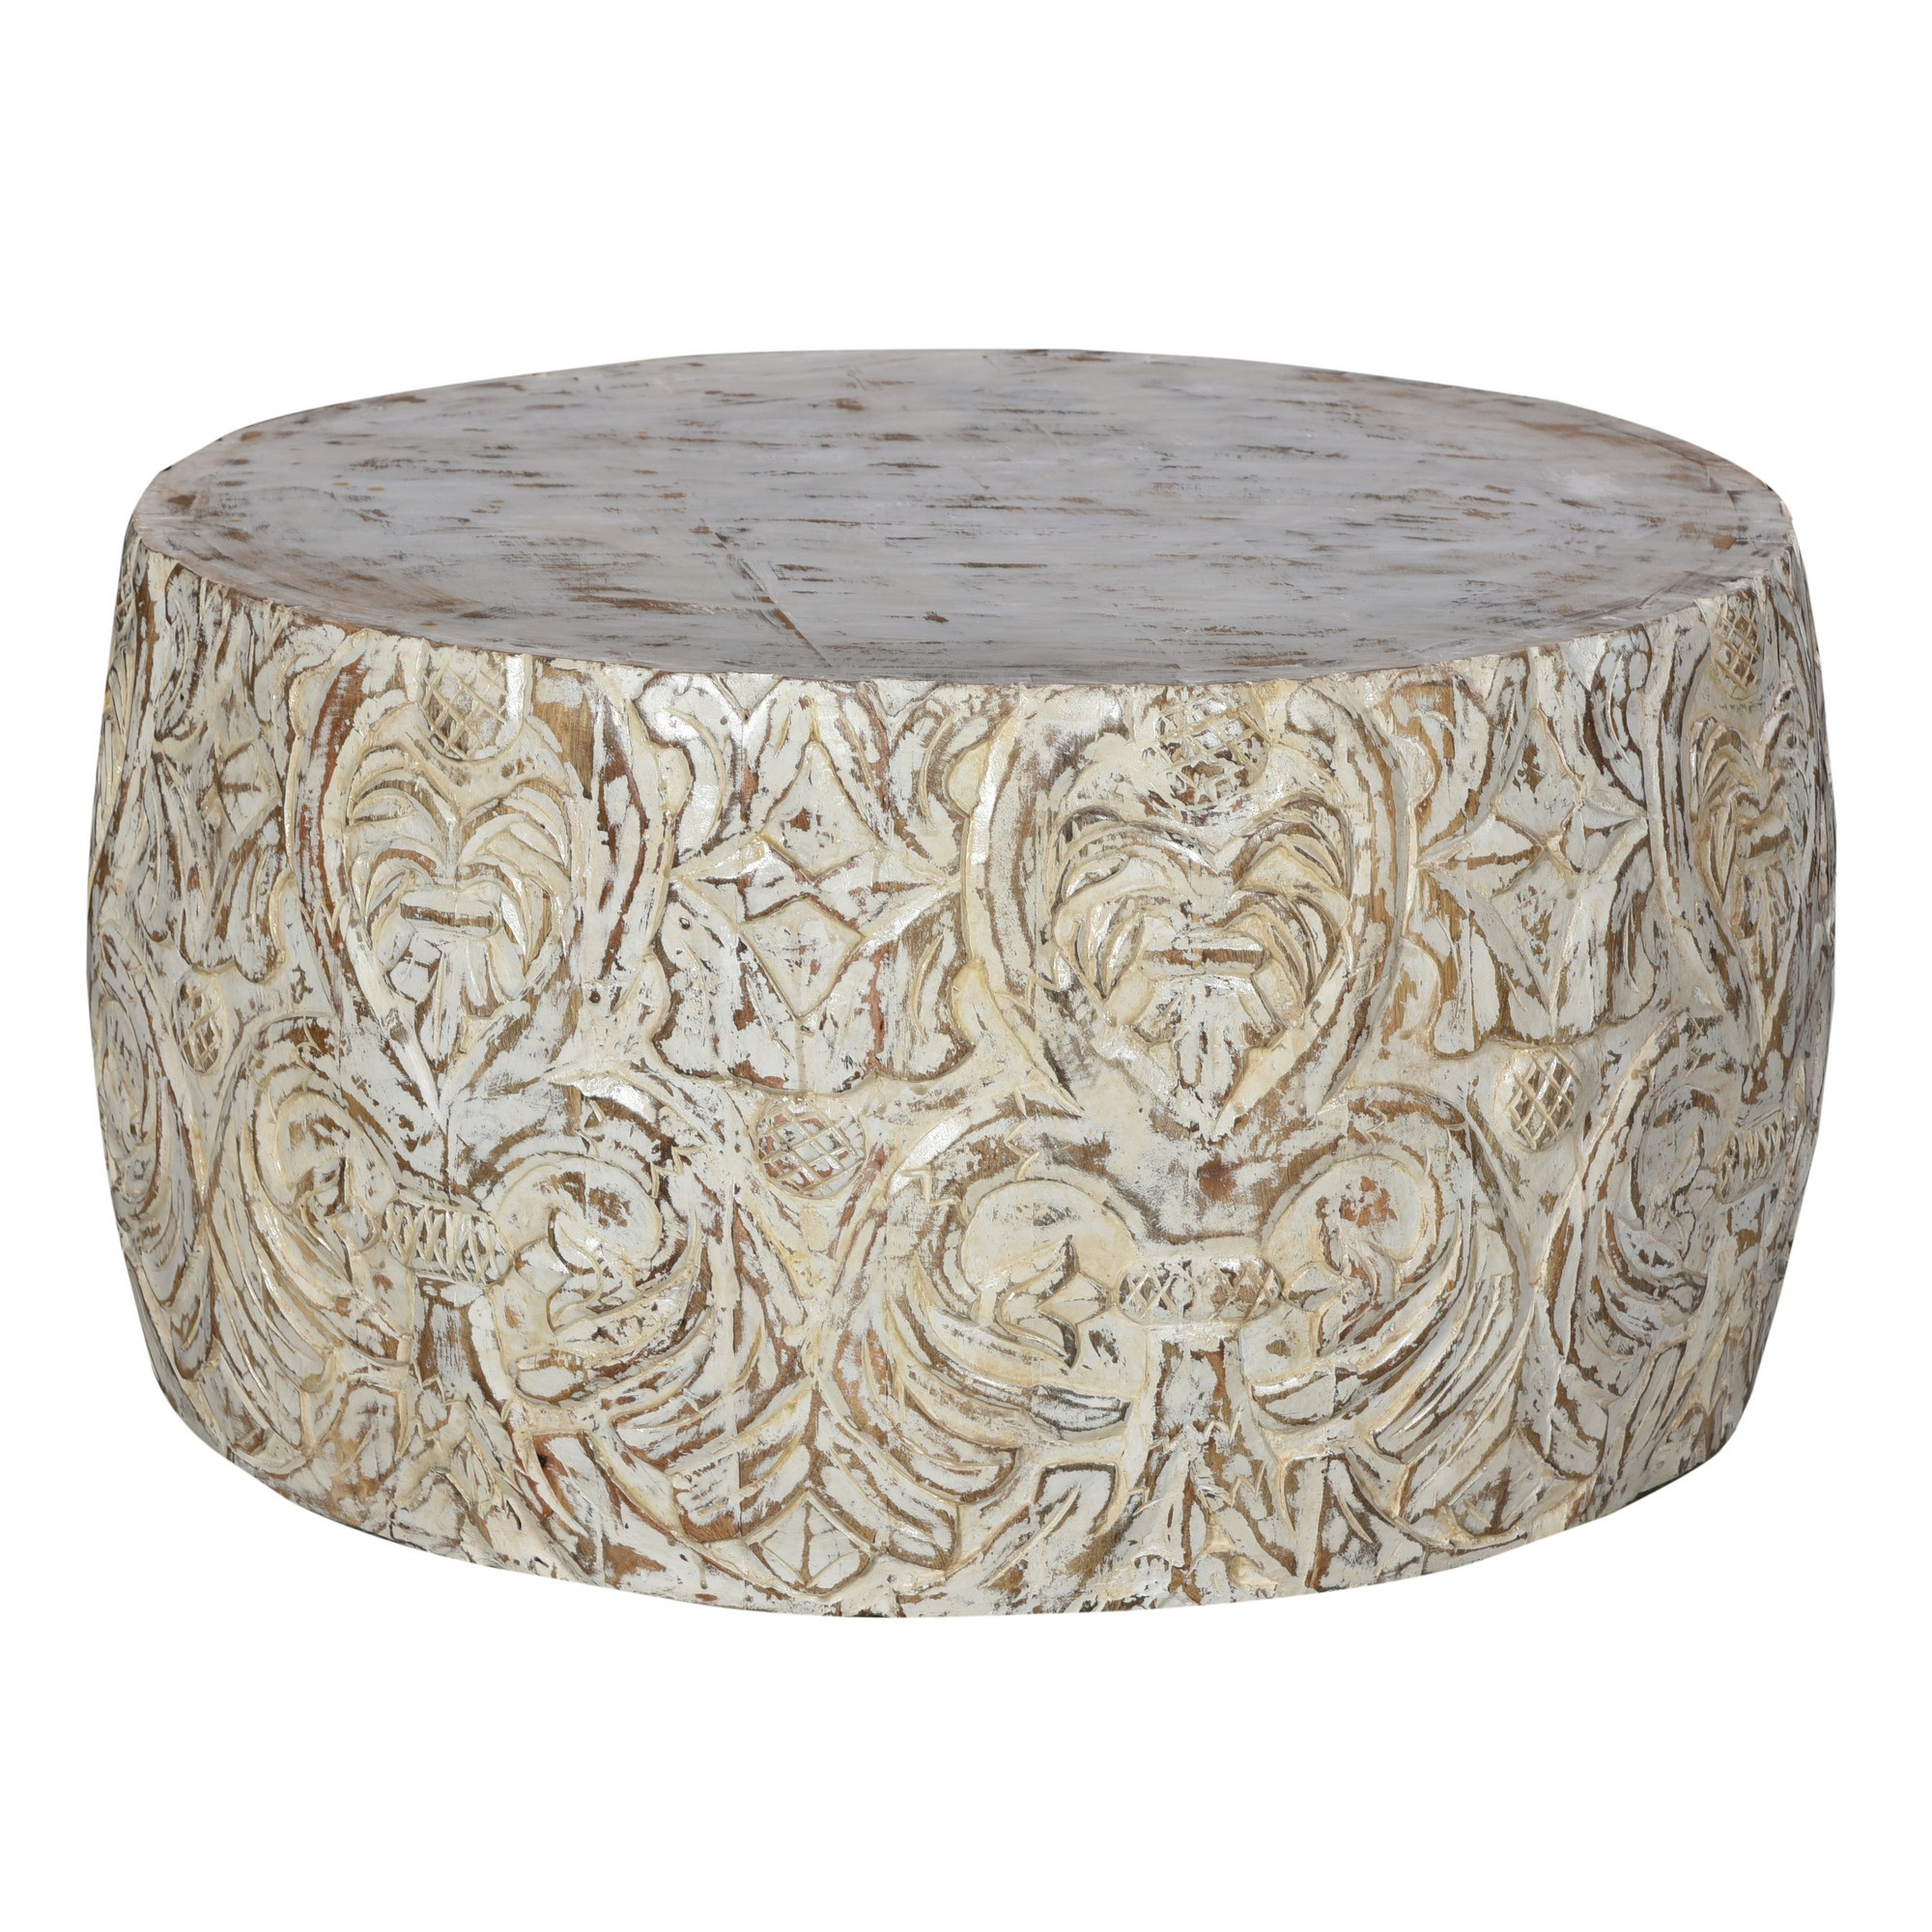 Rooka Hand Carved Timber Round Coffee Table, 80cm